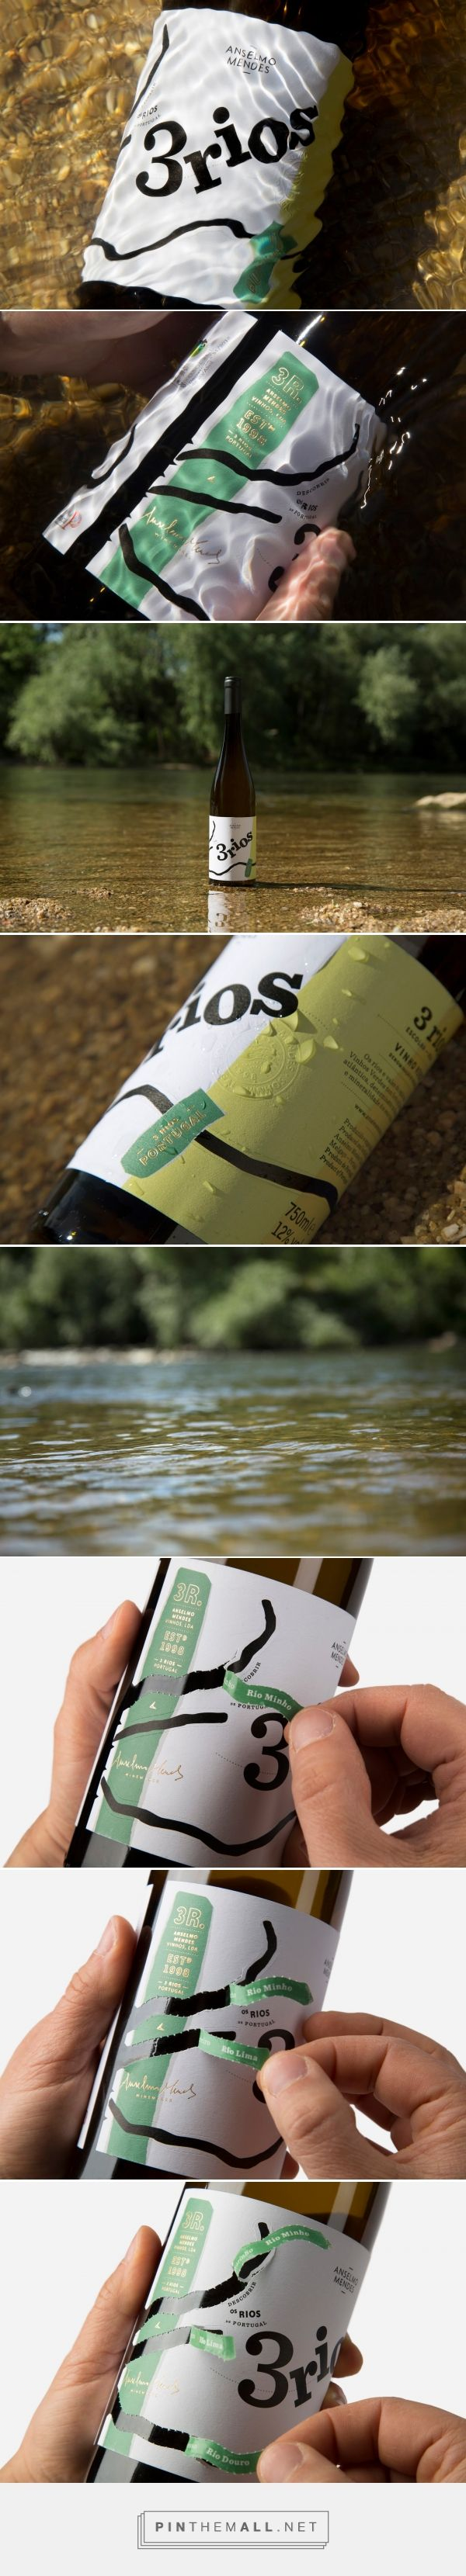 3 Rios (3 Rivers) wine packaging design by Moço - Wine Branding - http://www.packagingoftheworld.com/2017/11/3-rios.html - created via https://pinthemall.net